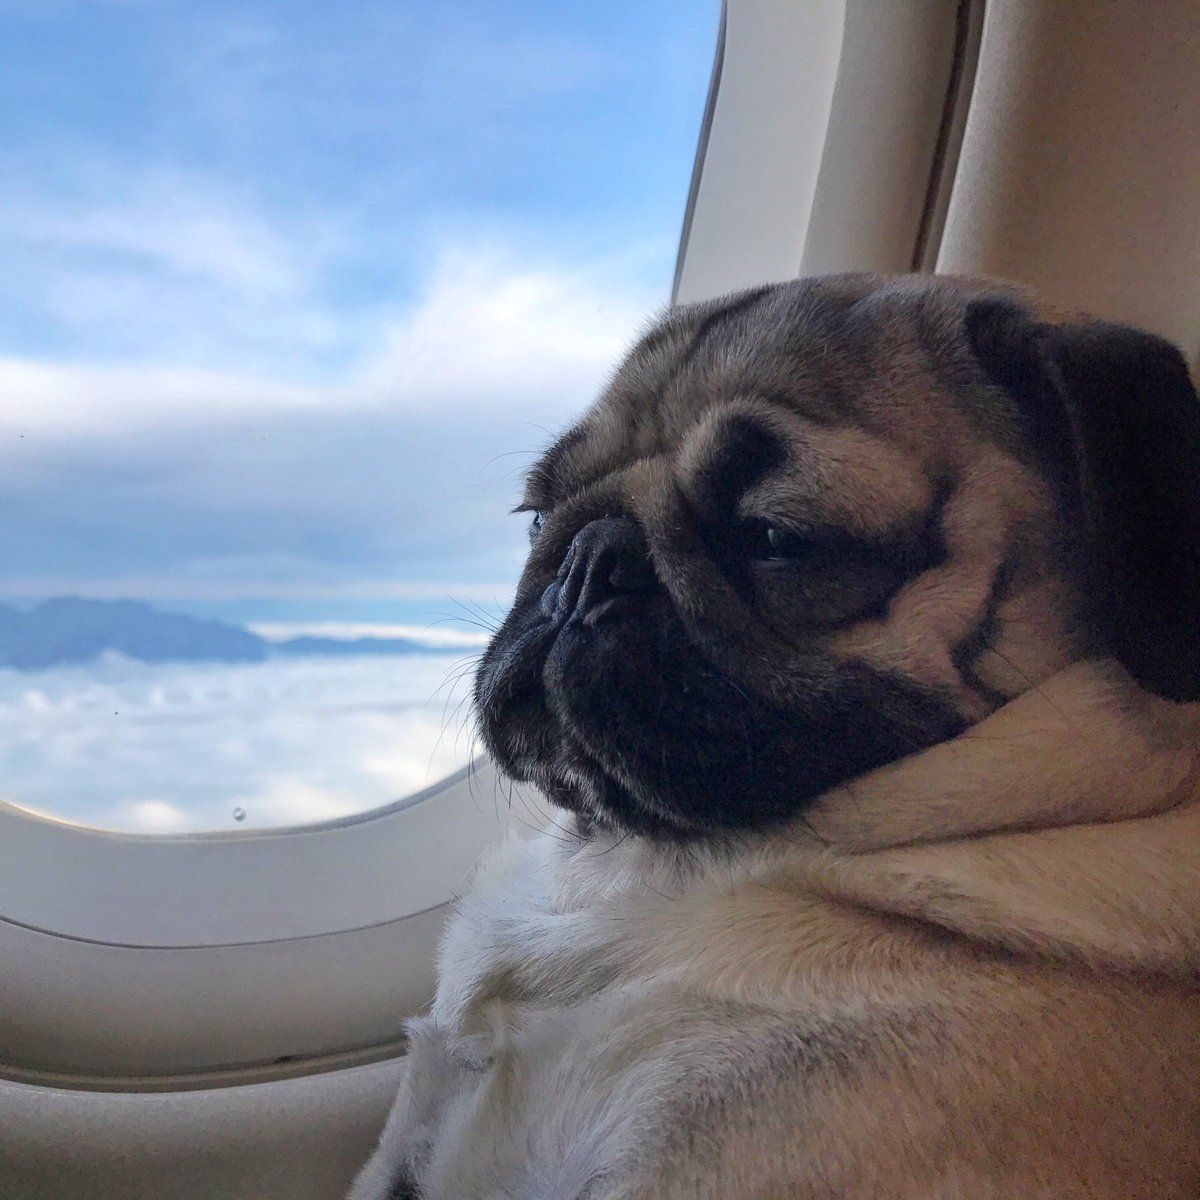 airlines that allow pets in cabin